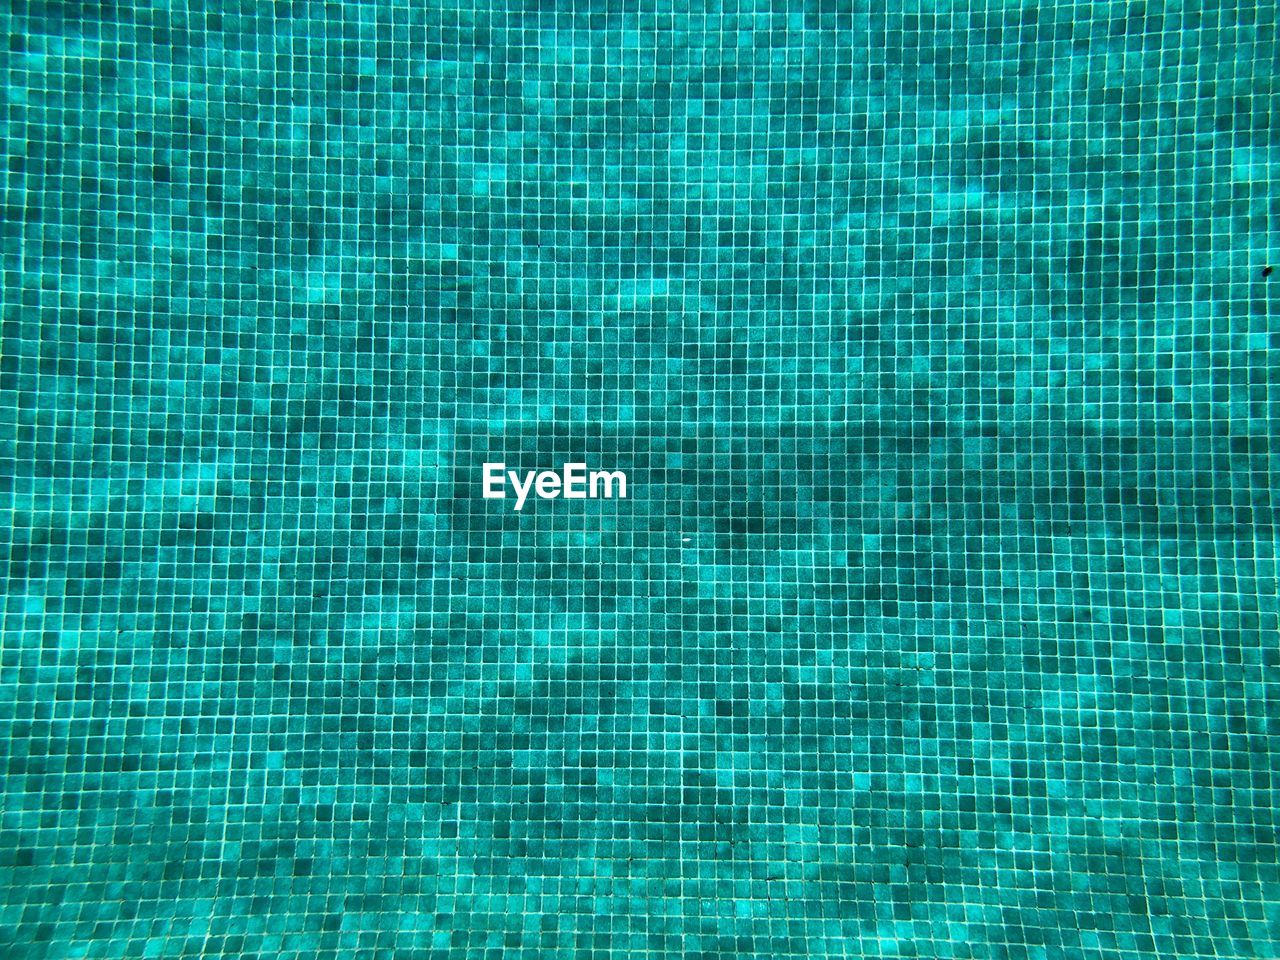 swimming pool, backgrounds, pool, blue, textured, pattern, water, no people, full frame, abstract, nature, tile, turquoise colored, close-up, flooring, extreme close-up, directly above, outdoors, day, tiled floor, luxury, textured effect